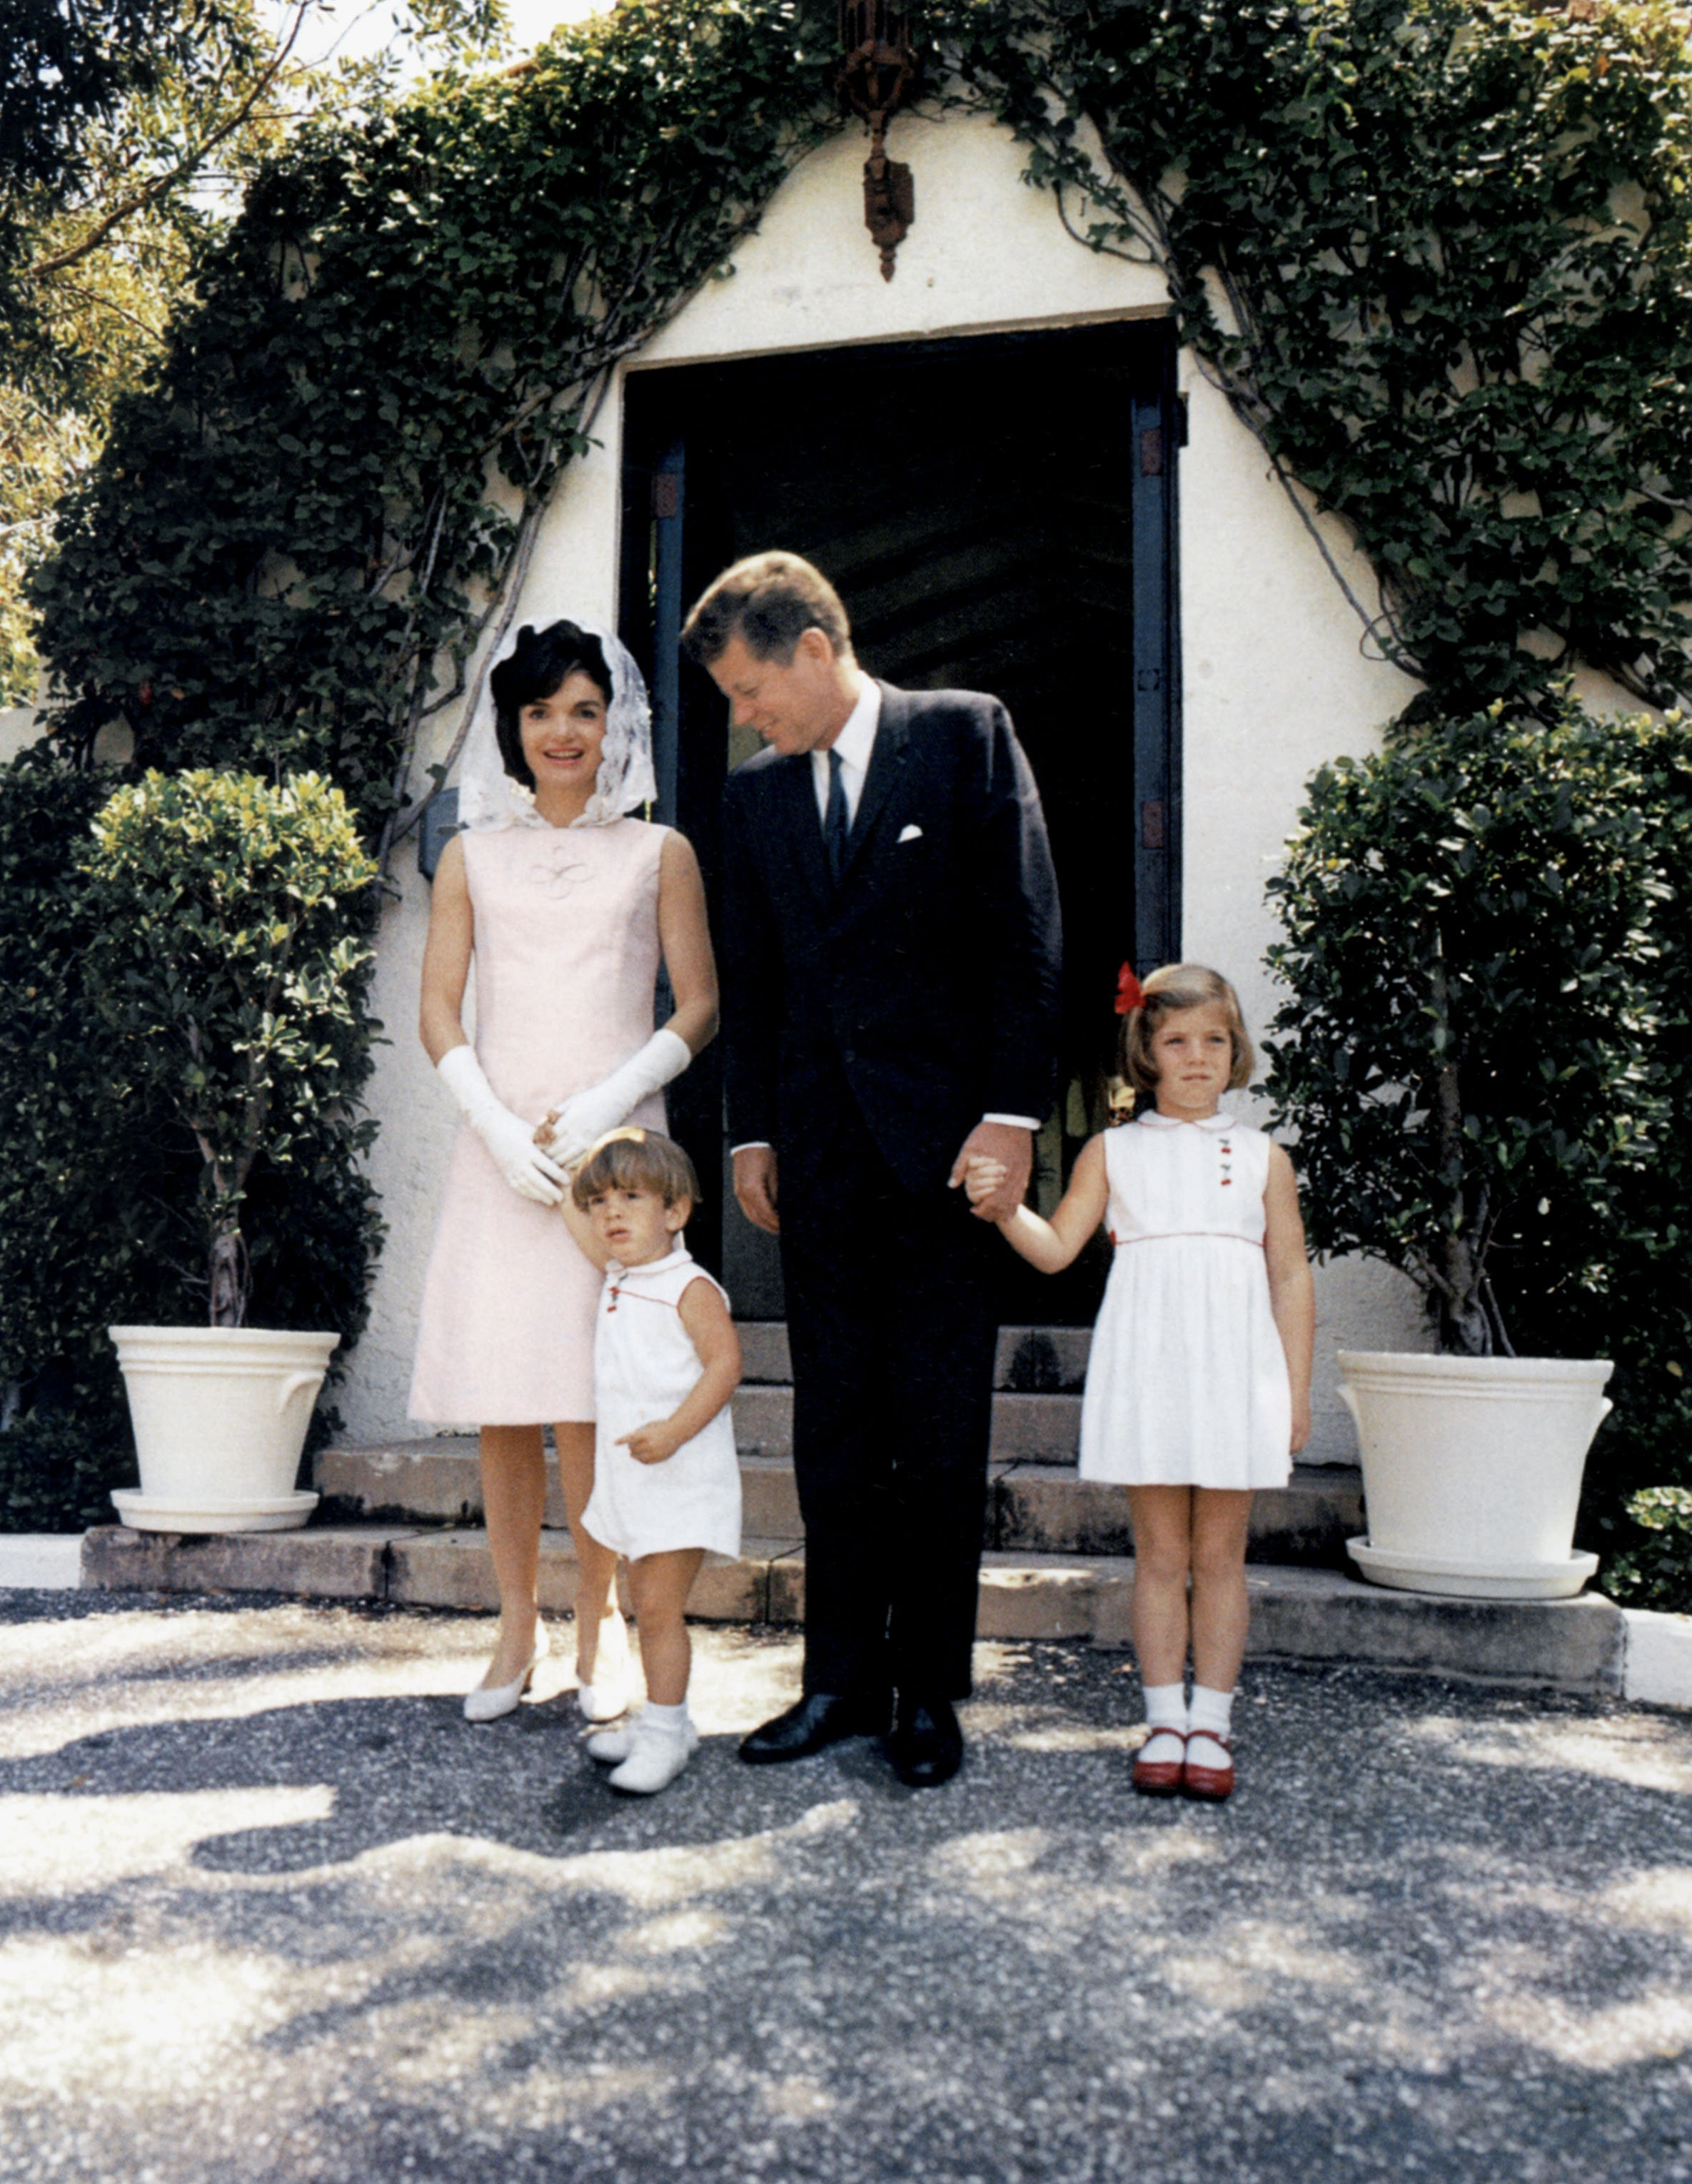 Jacqueline Kennedy with President John F. Kennedy and their two children John Jr and Caroline at Palm Beach, Florida on April 14, 1963   Photo: Getty Images